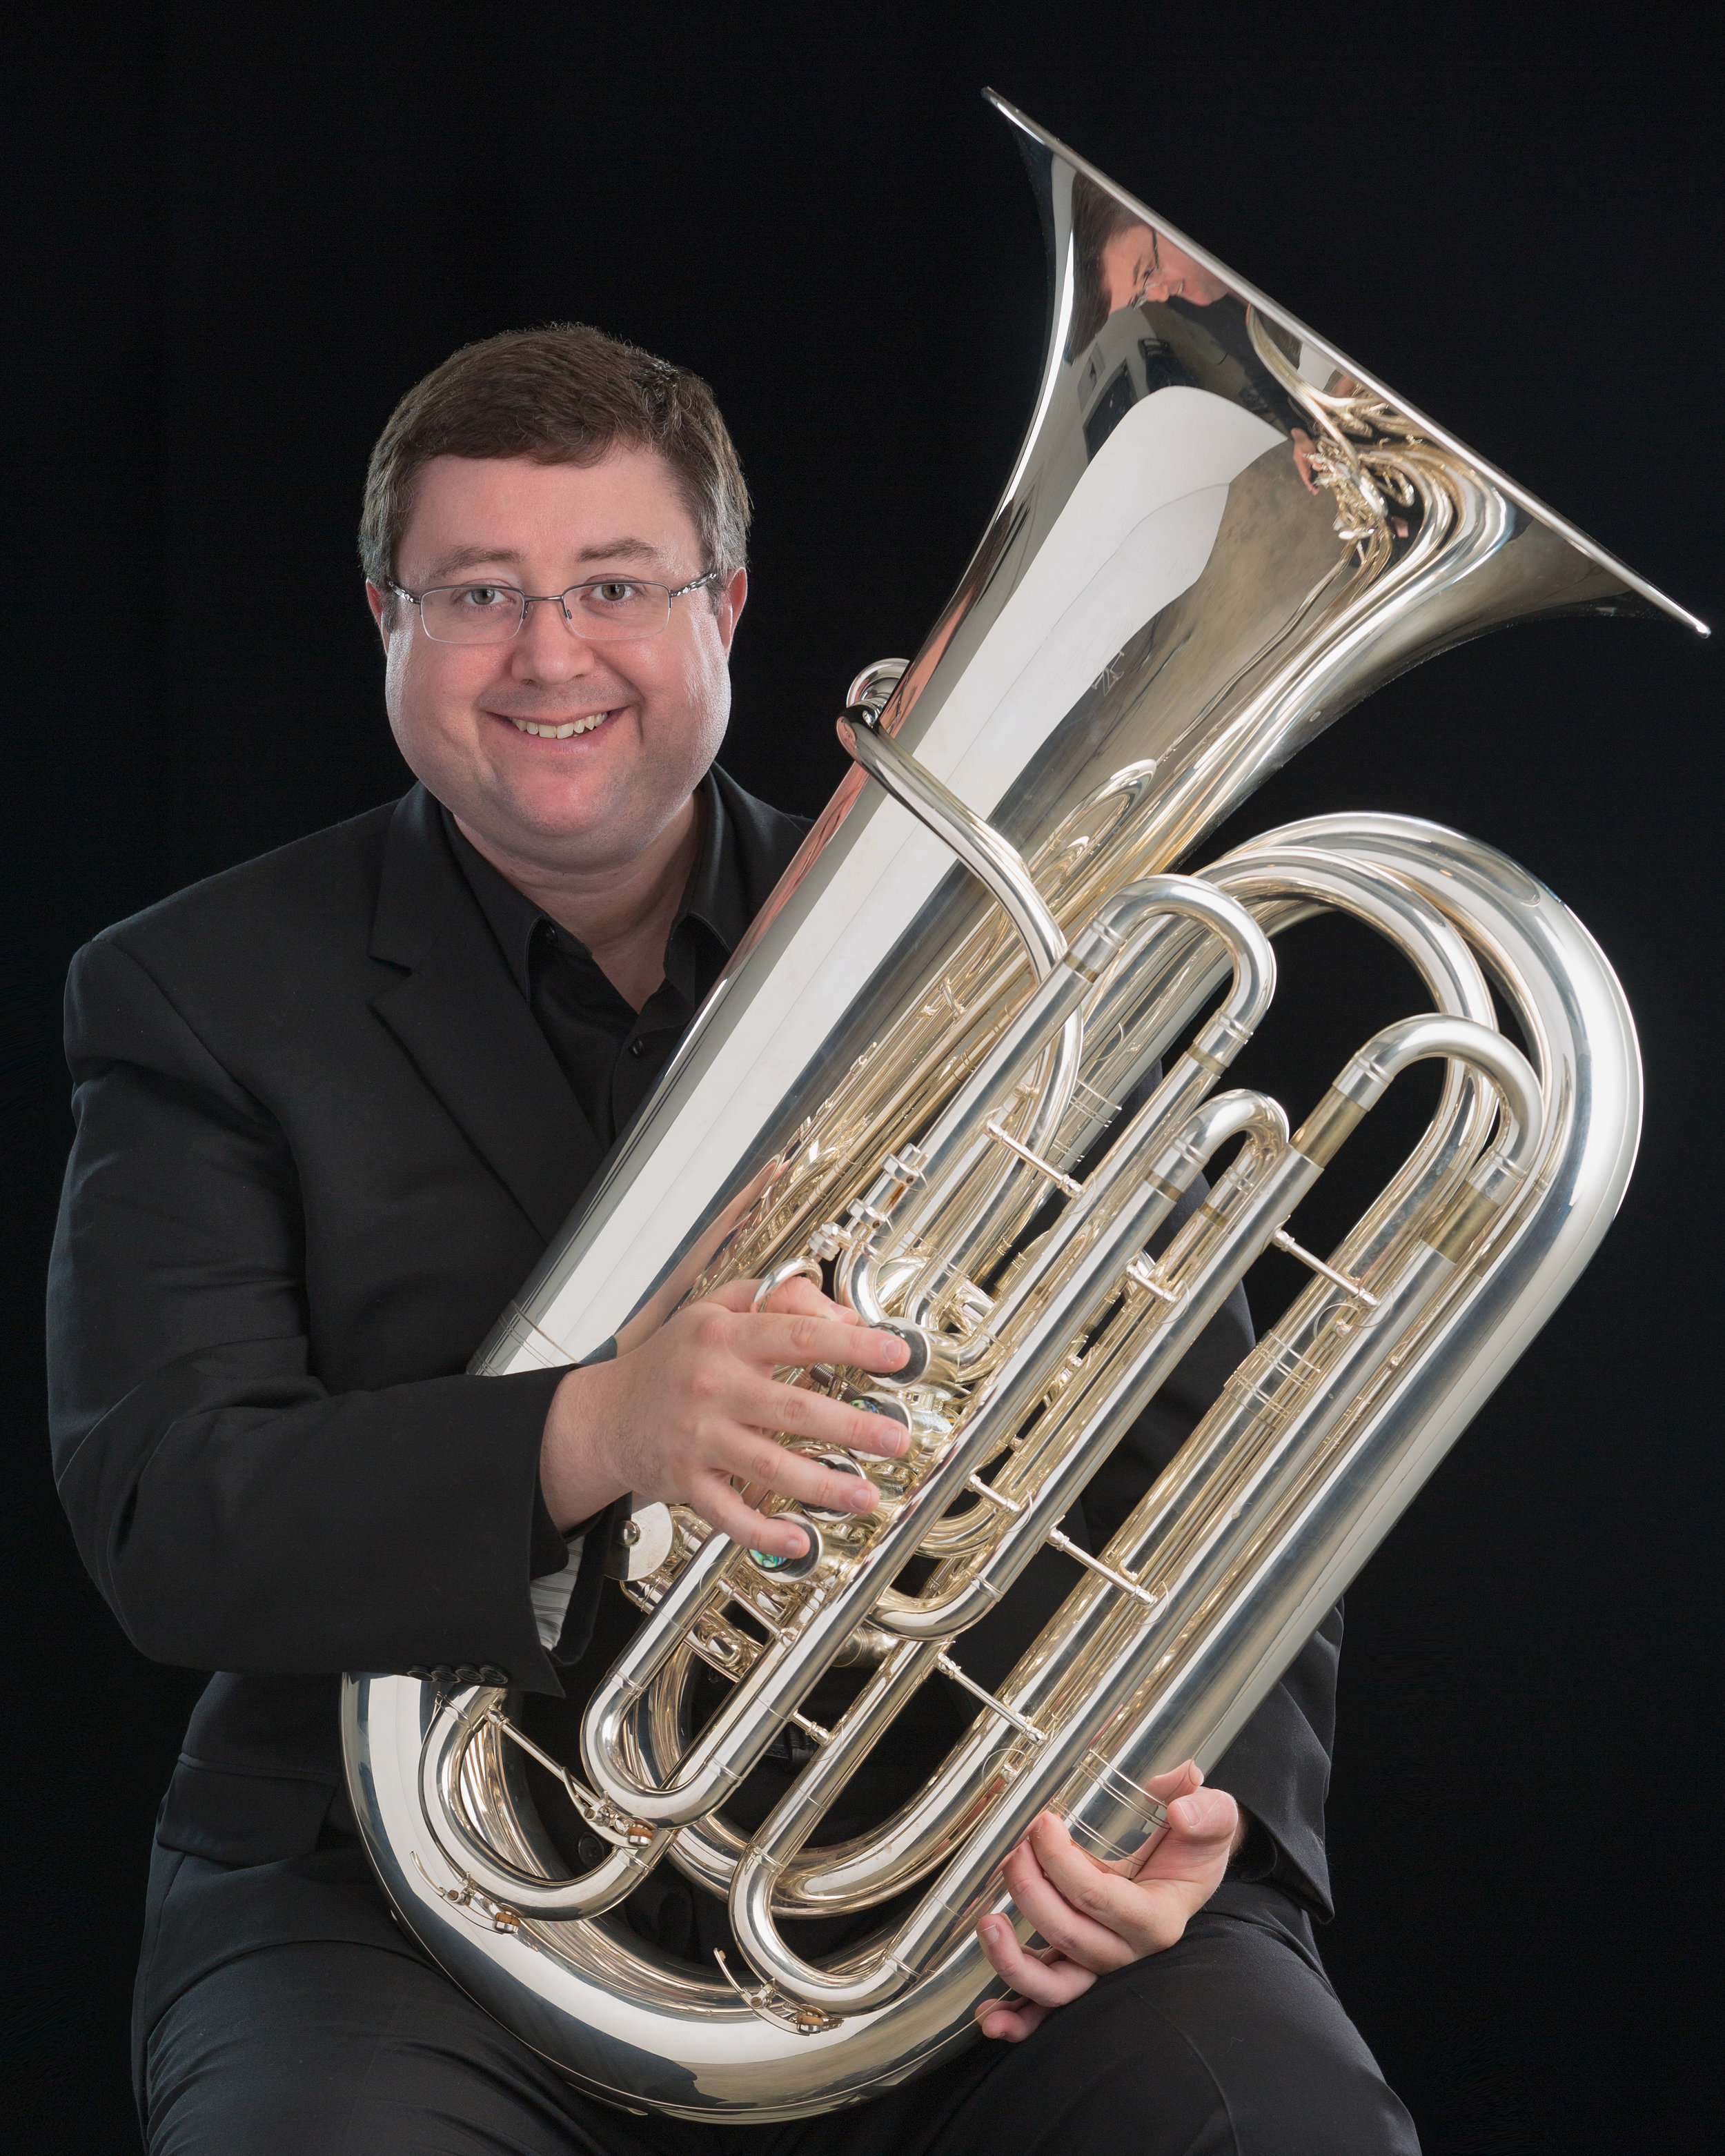 Chris Combest, cimbasso